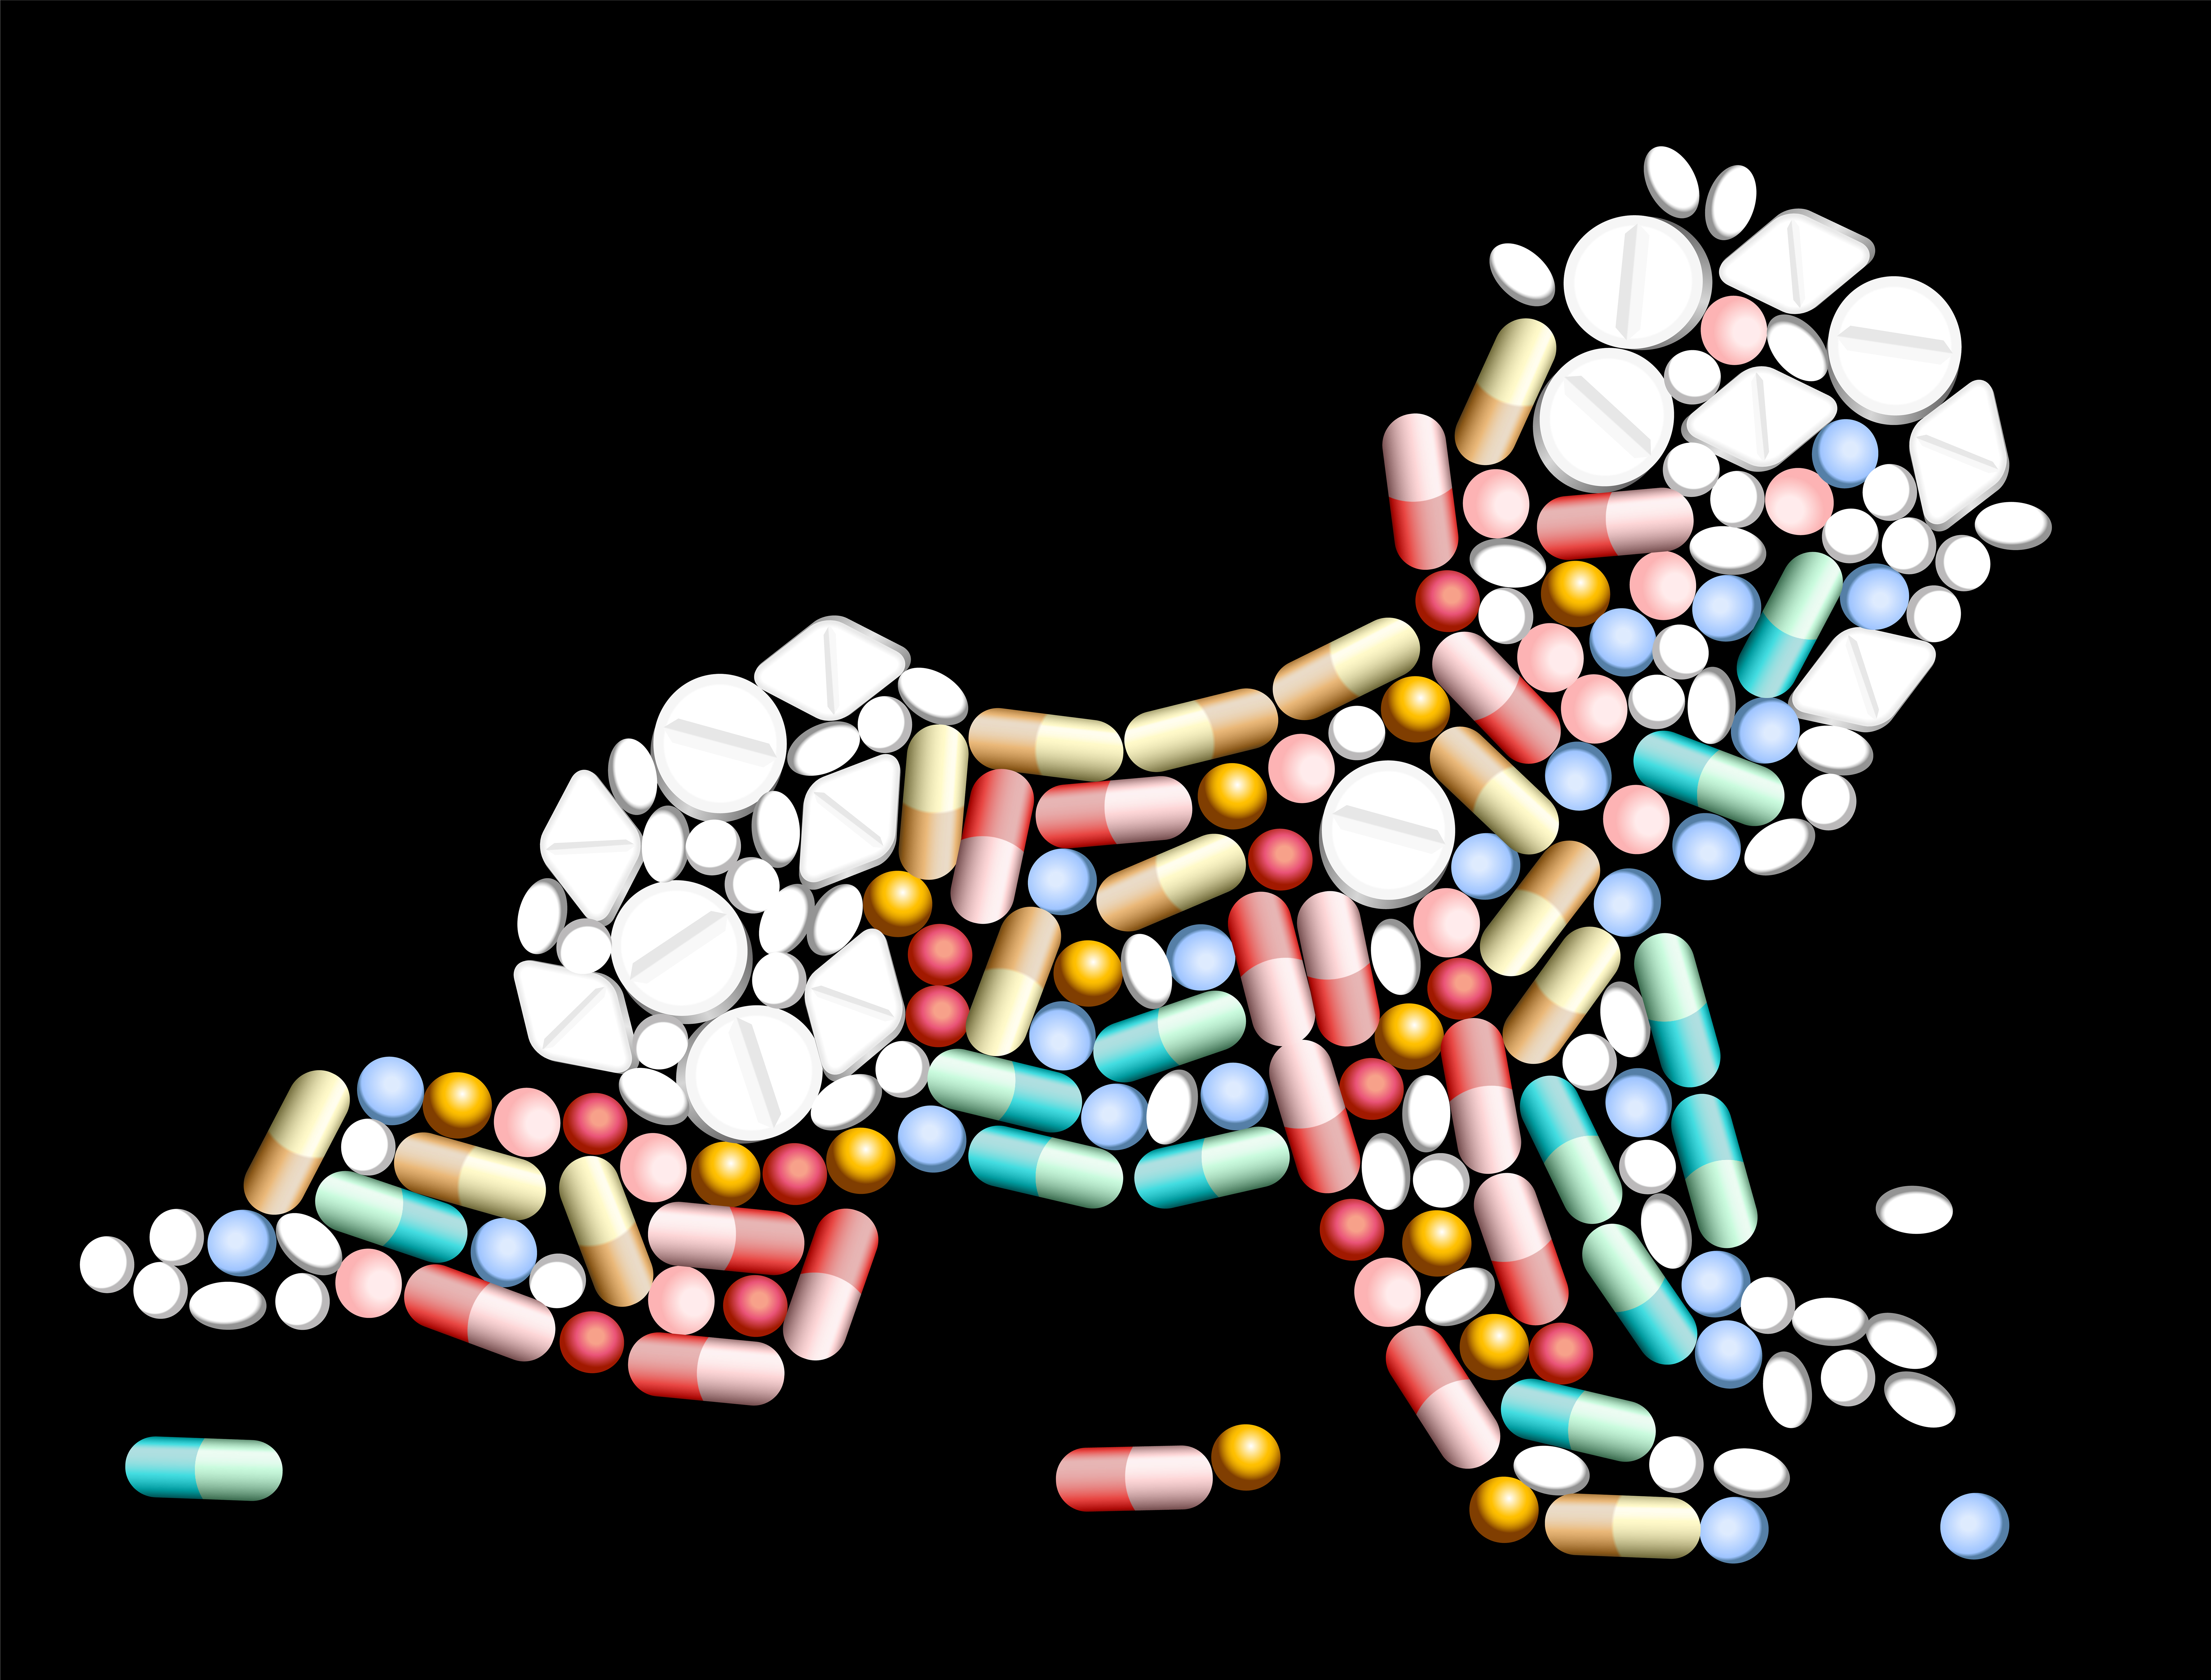 Science And Medicine: Will Antibiotics Make Your Baby Fat?